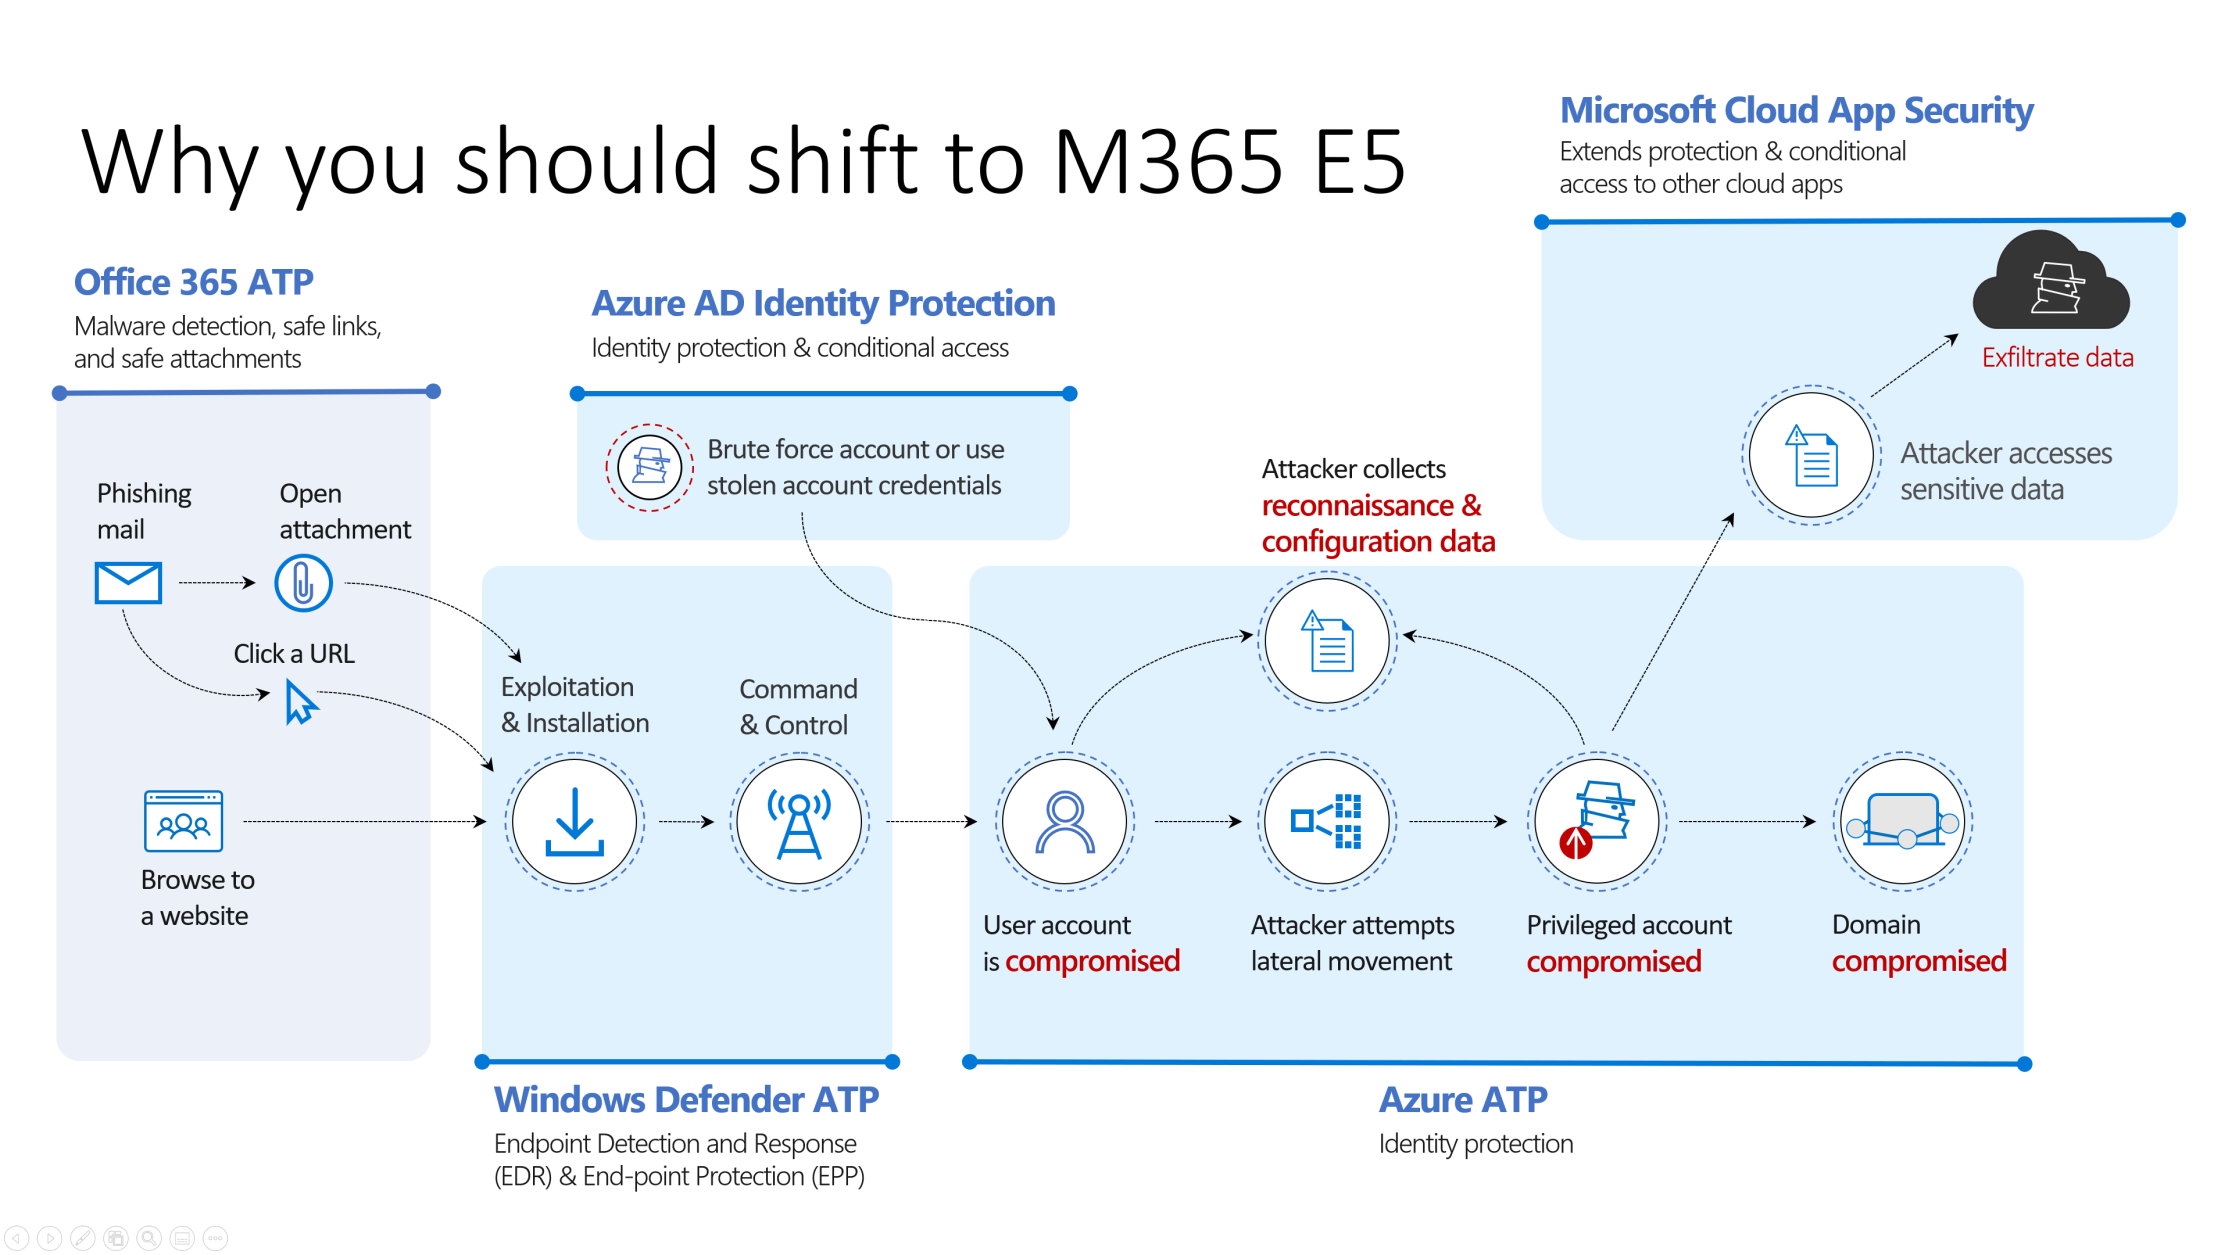 Shift to M365 E5 the attack chain